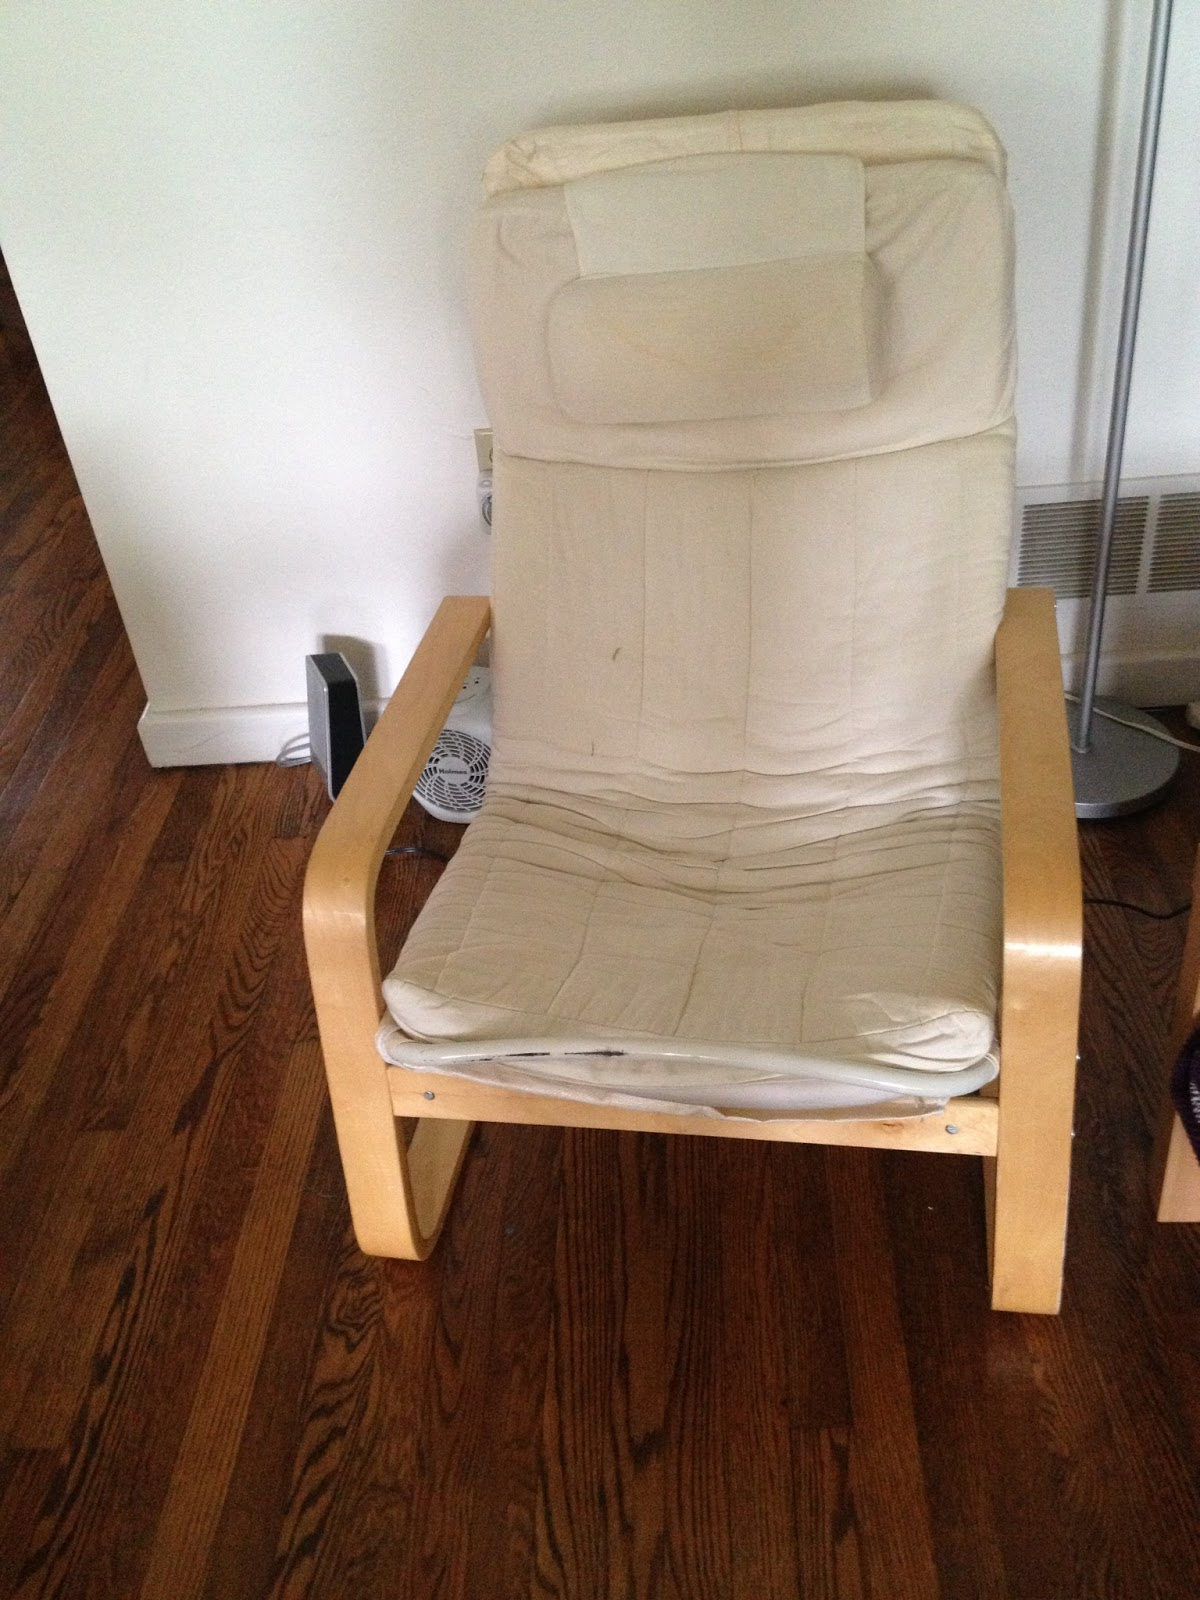 old ikea chair covers wedding rental diy hack poang cover my first step was to assess the size of karlstad and see how it would fit around on left is right